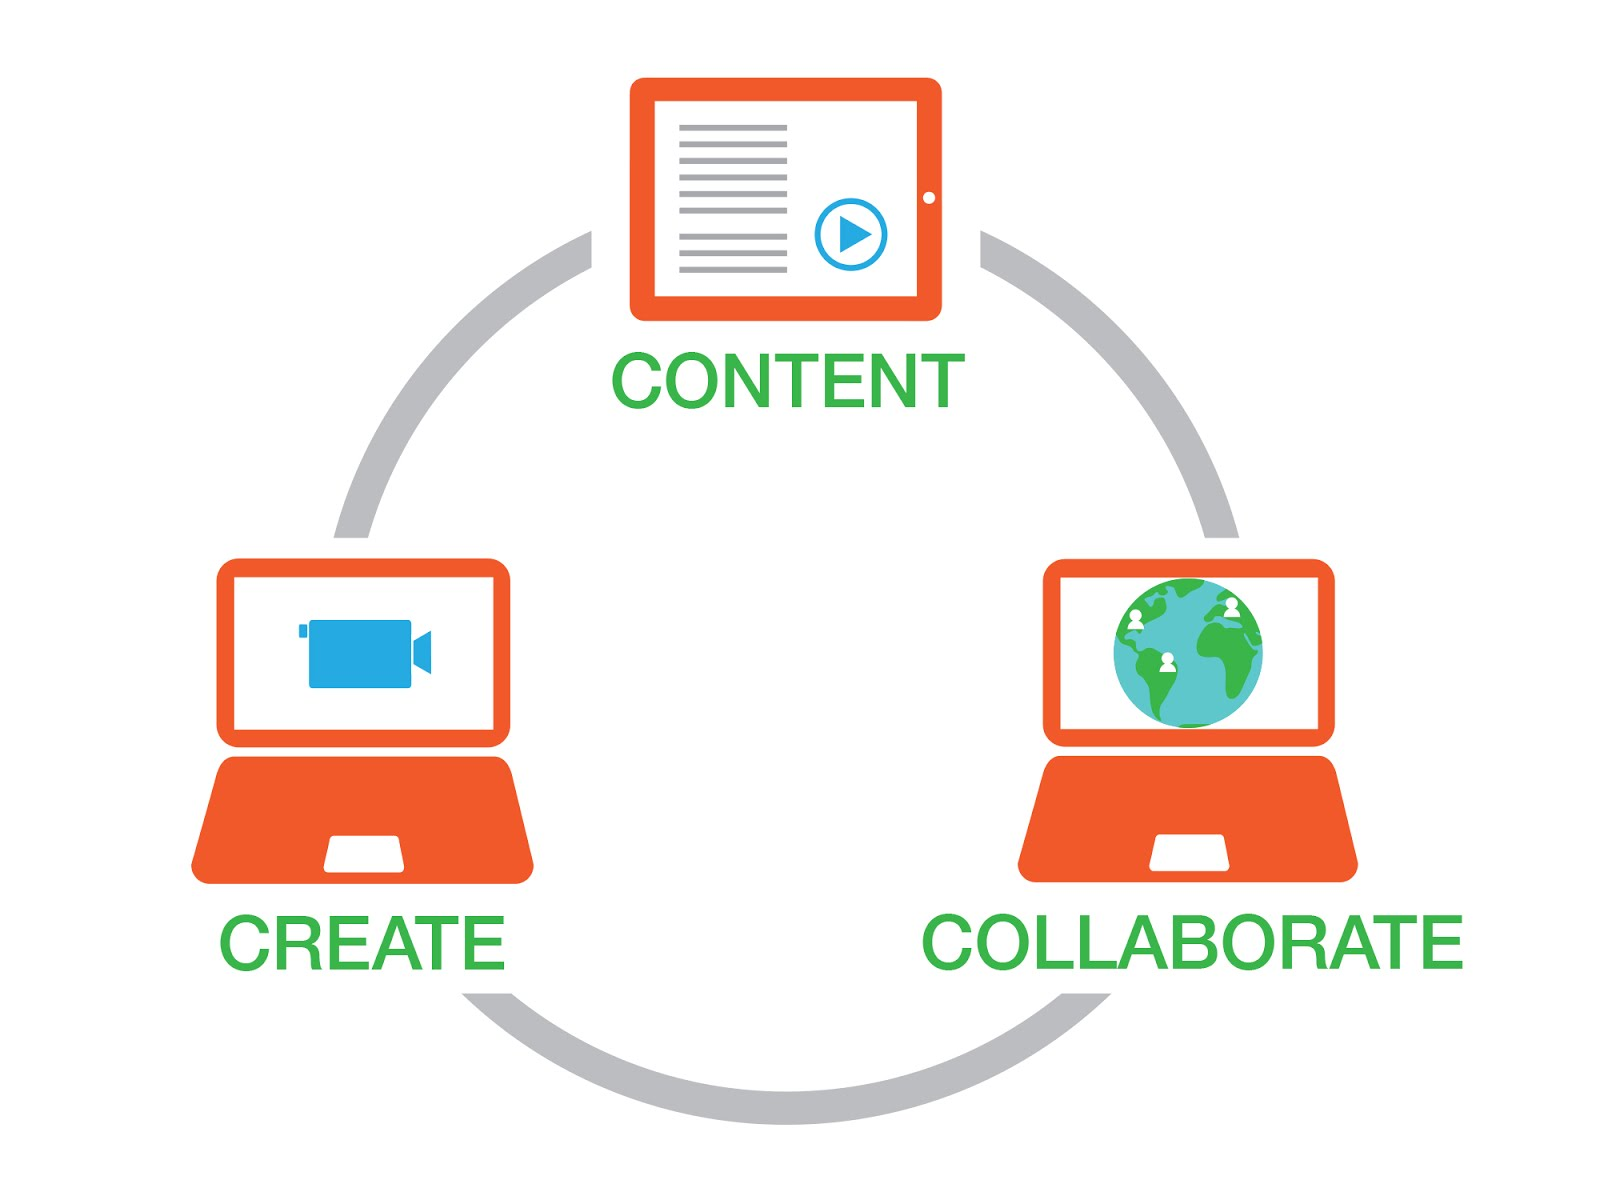 Content collaborate create circle